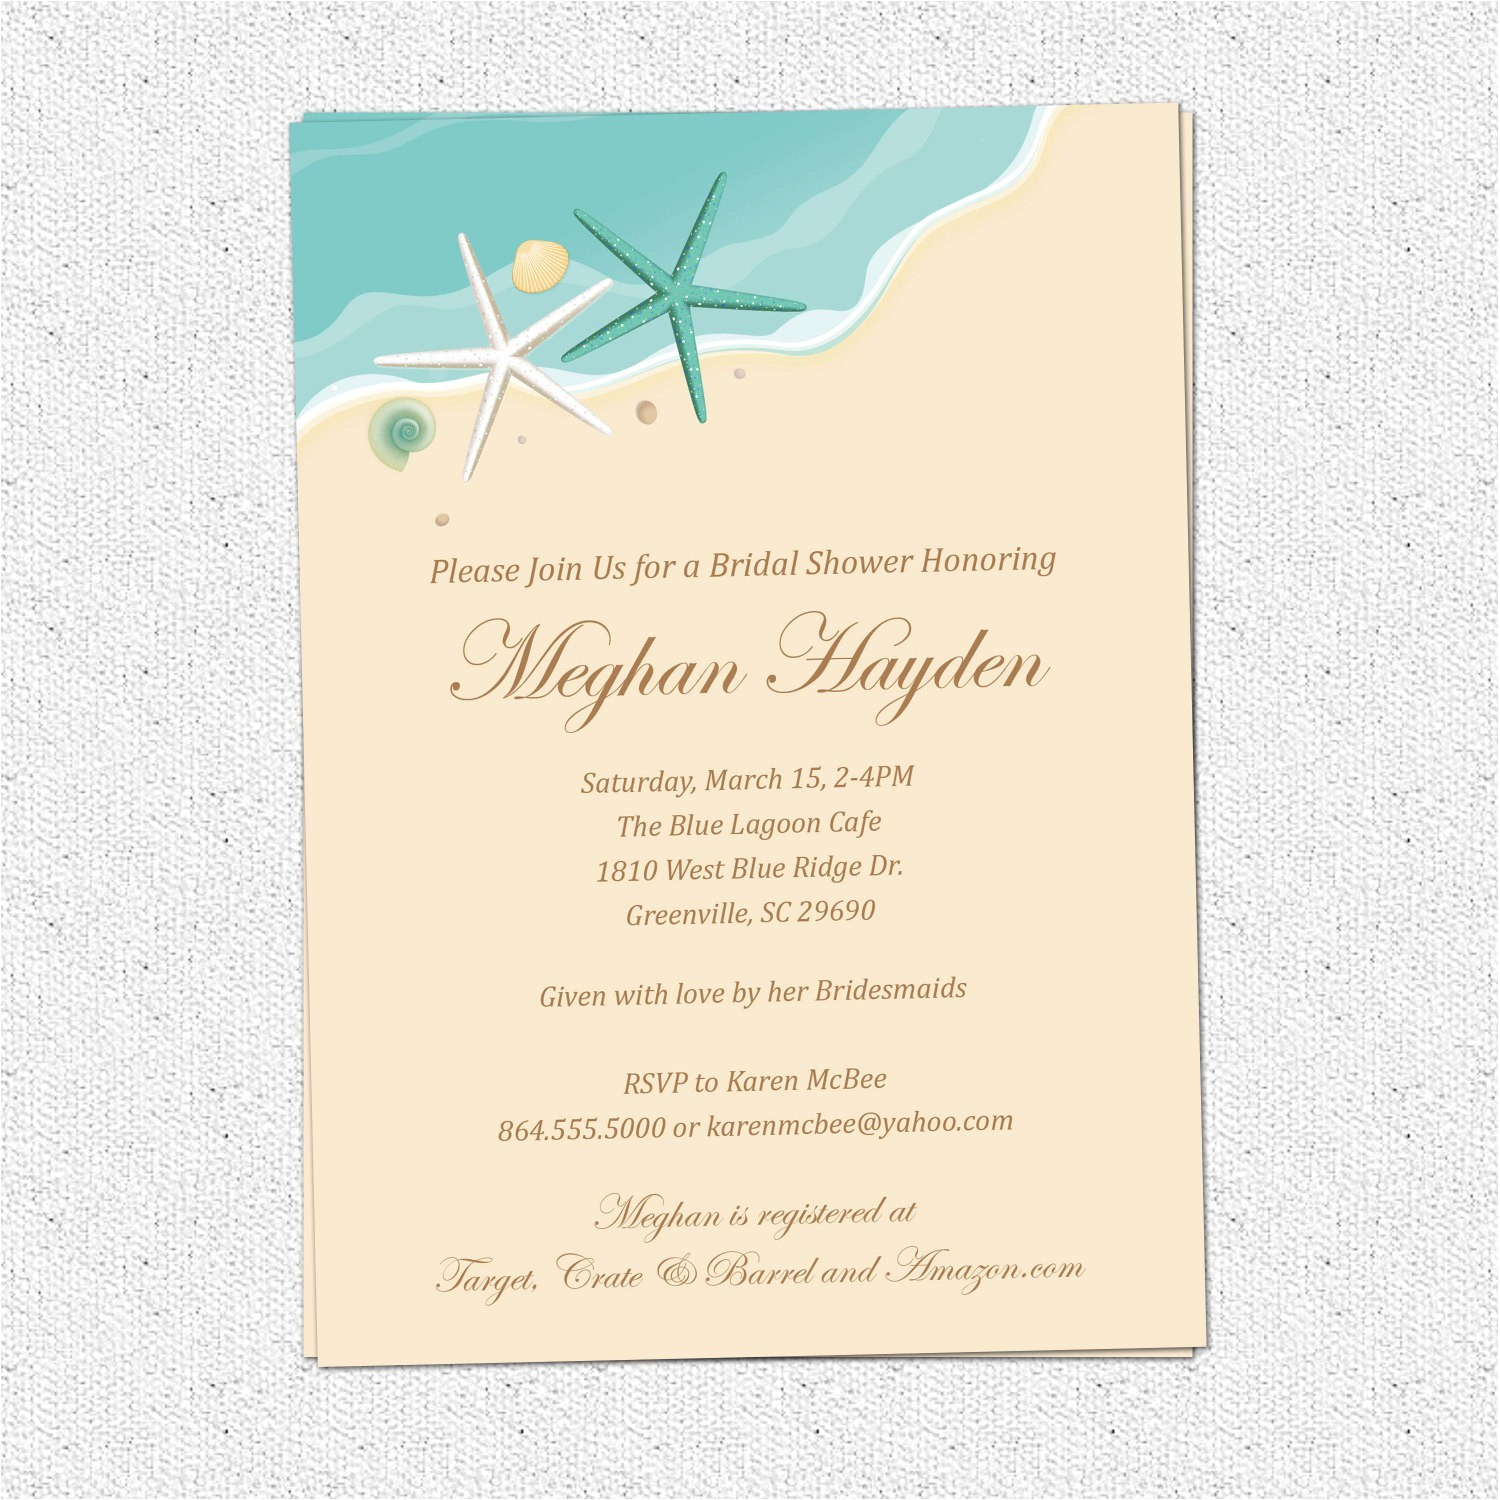 Beachy Bridal Shower Invitations Beach Bridal Shower Invitations Beach themed Bridal